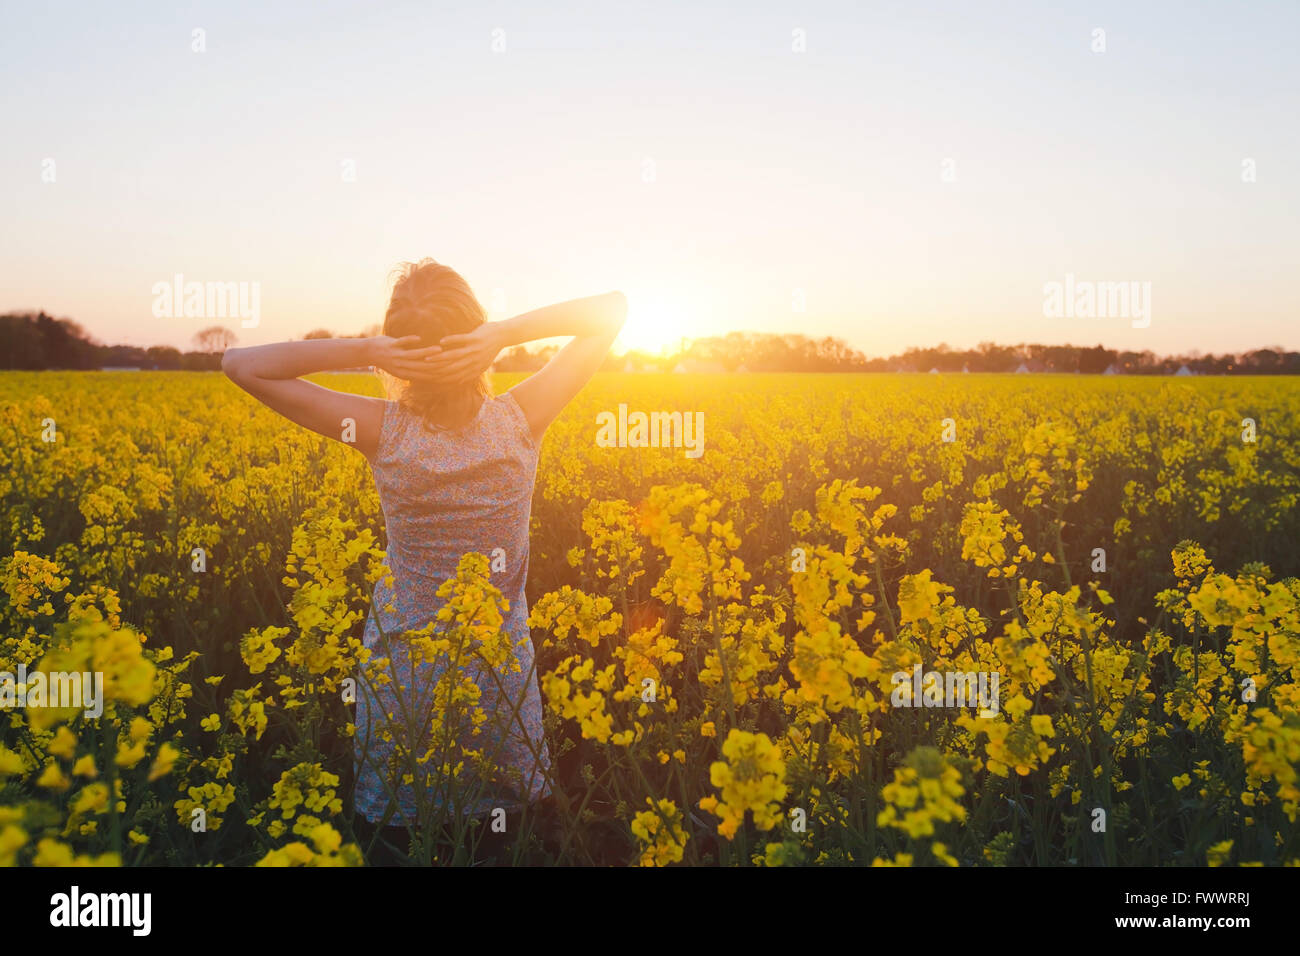 young woman enjoying summer and nature in yellow flower field at sunset, harmony and healthy lifestyle - Stock Image